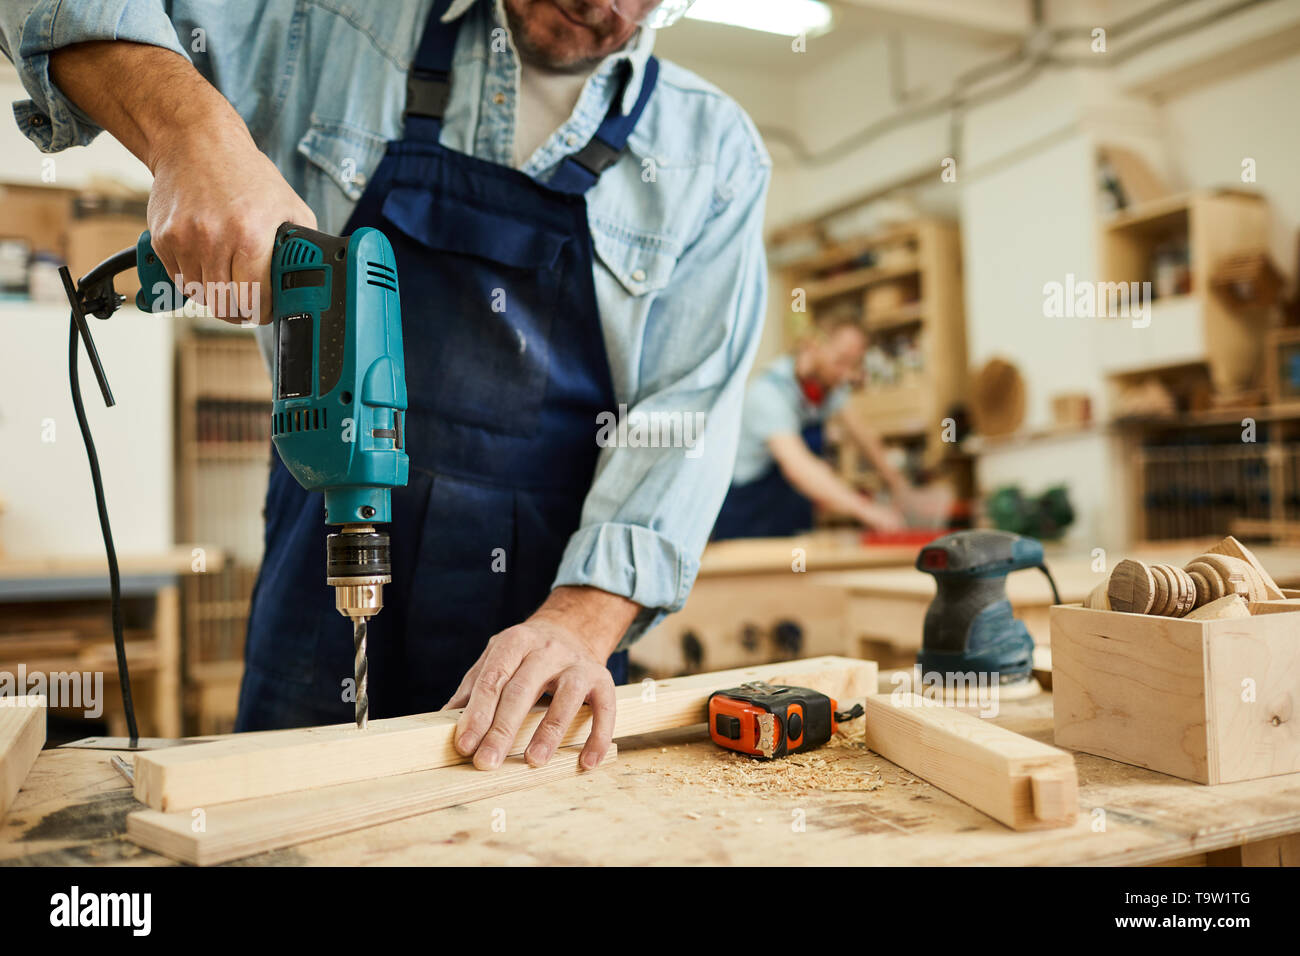 Closeup of mature carpenter drilling wood while working in joinery, copy space - Stock Image